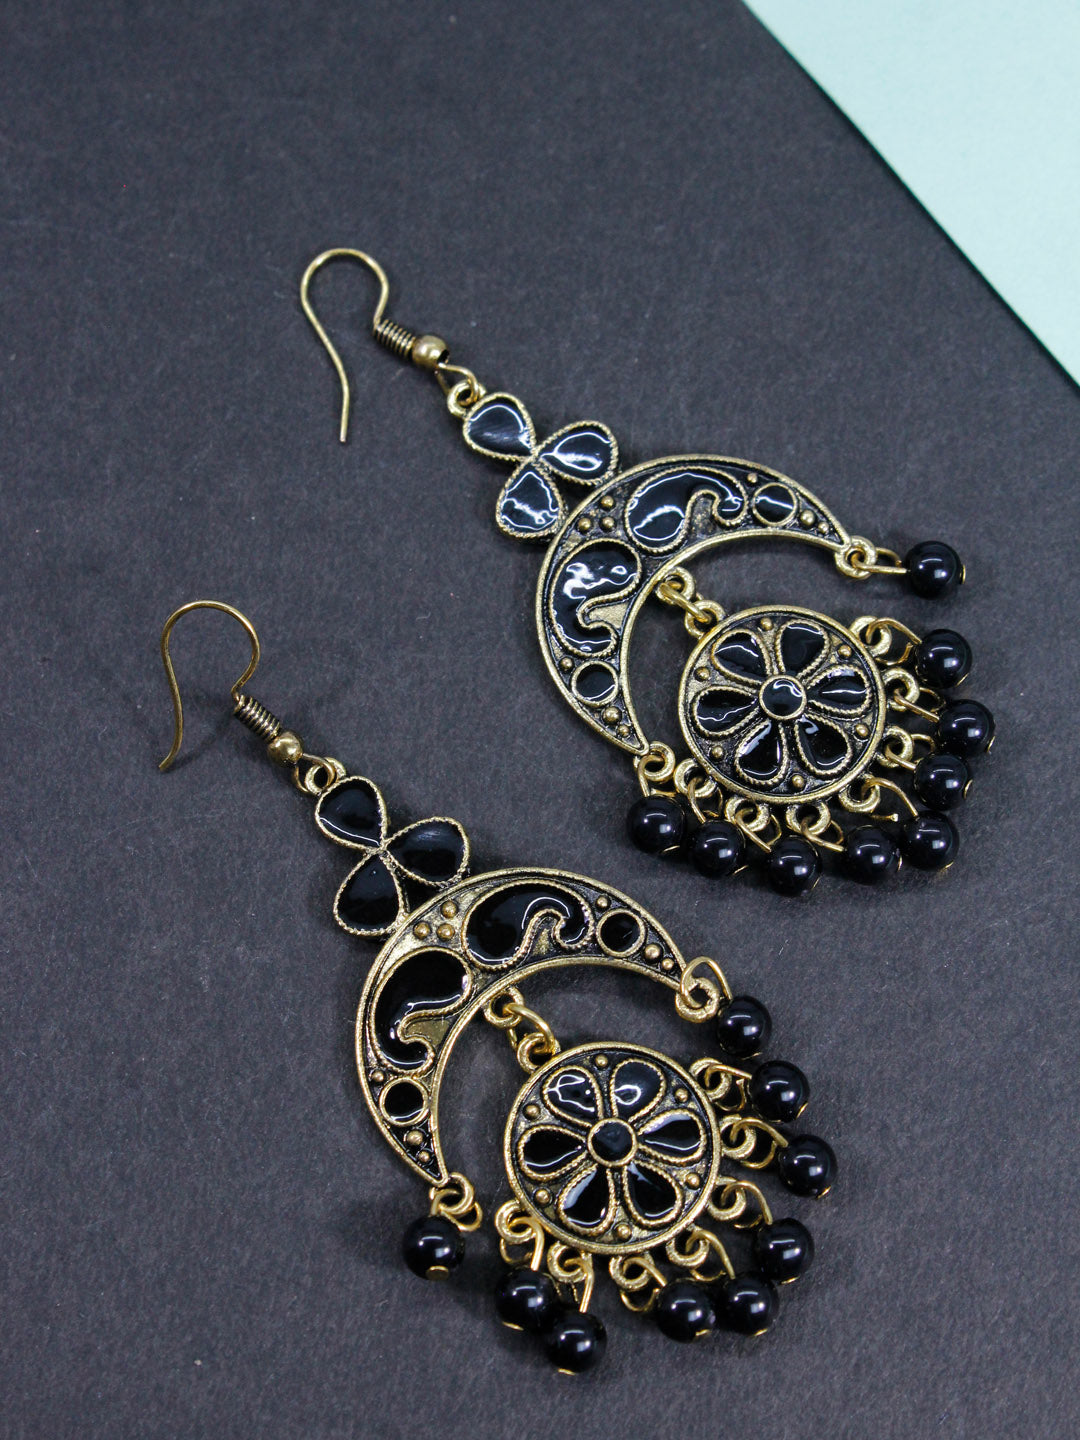 Aana Gold Plated Floral Design Black Earring-AANA1-Earring